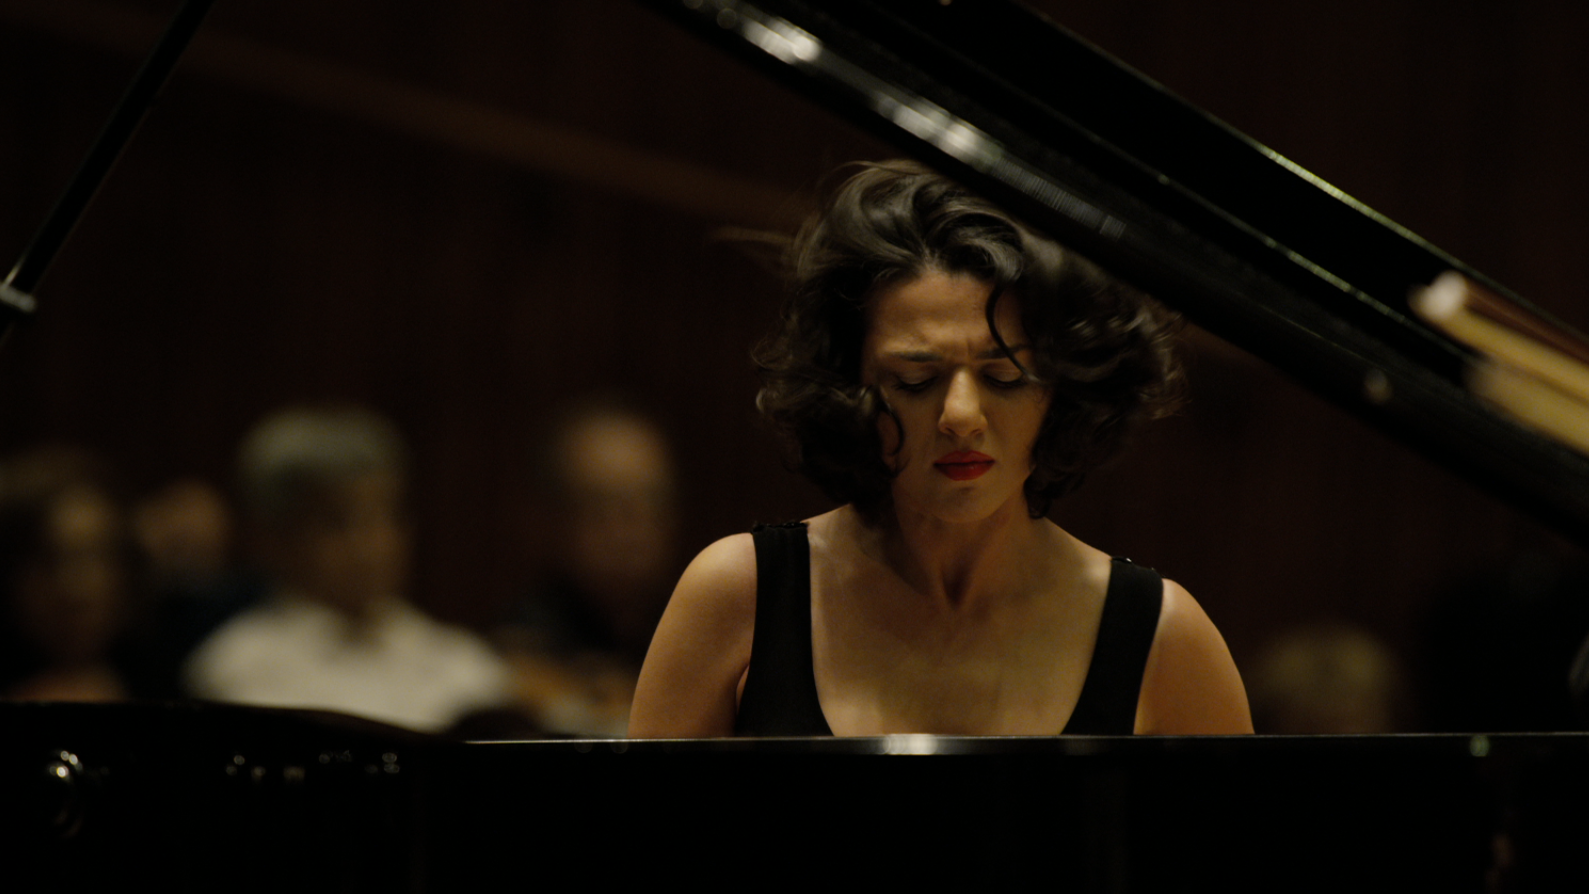 Zubin Mehta conducts Vivaldi, Mozart, and Beethoven – With Khatia Buniatishvili, Ram Oren, Yigal Meltzer, and Ron Selka